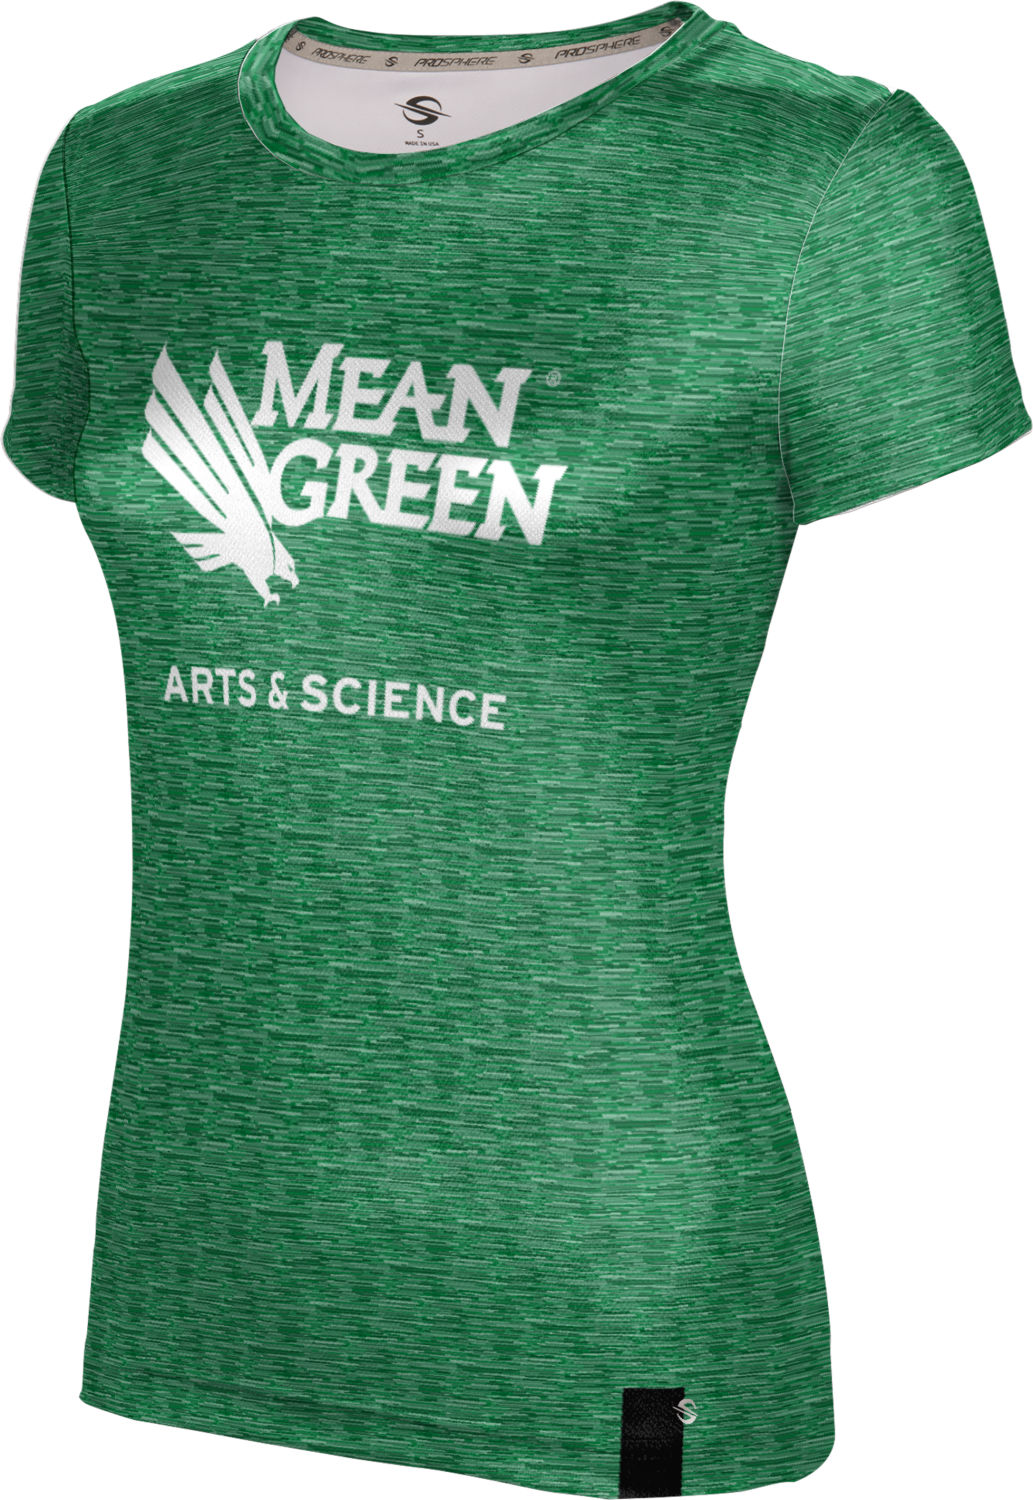 Girl's ProSphere Sublimated Tee - Arts and Science